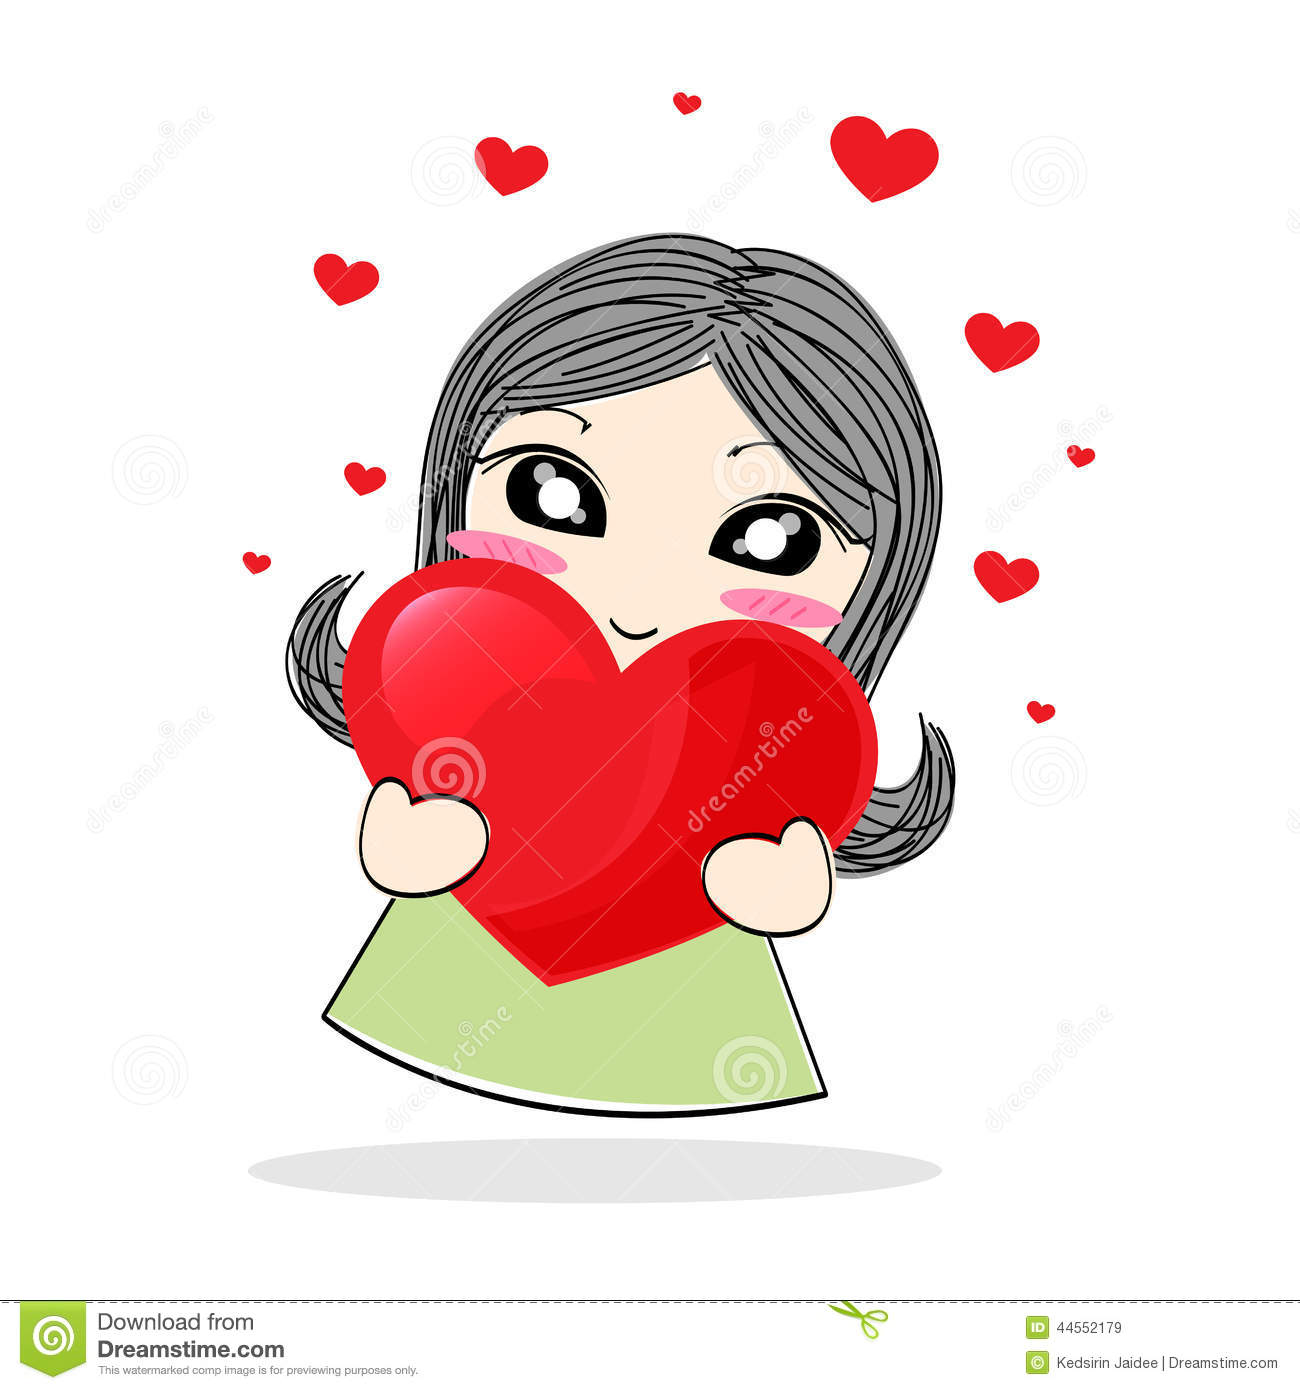 Image of: Fox Cute Cartoon Girl Holding Red Heart Dreamstimecom Cute Cartoon Girl Holding Red Heart Stock Vector Illustration Of